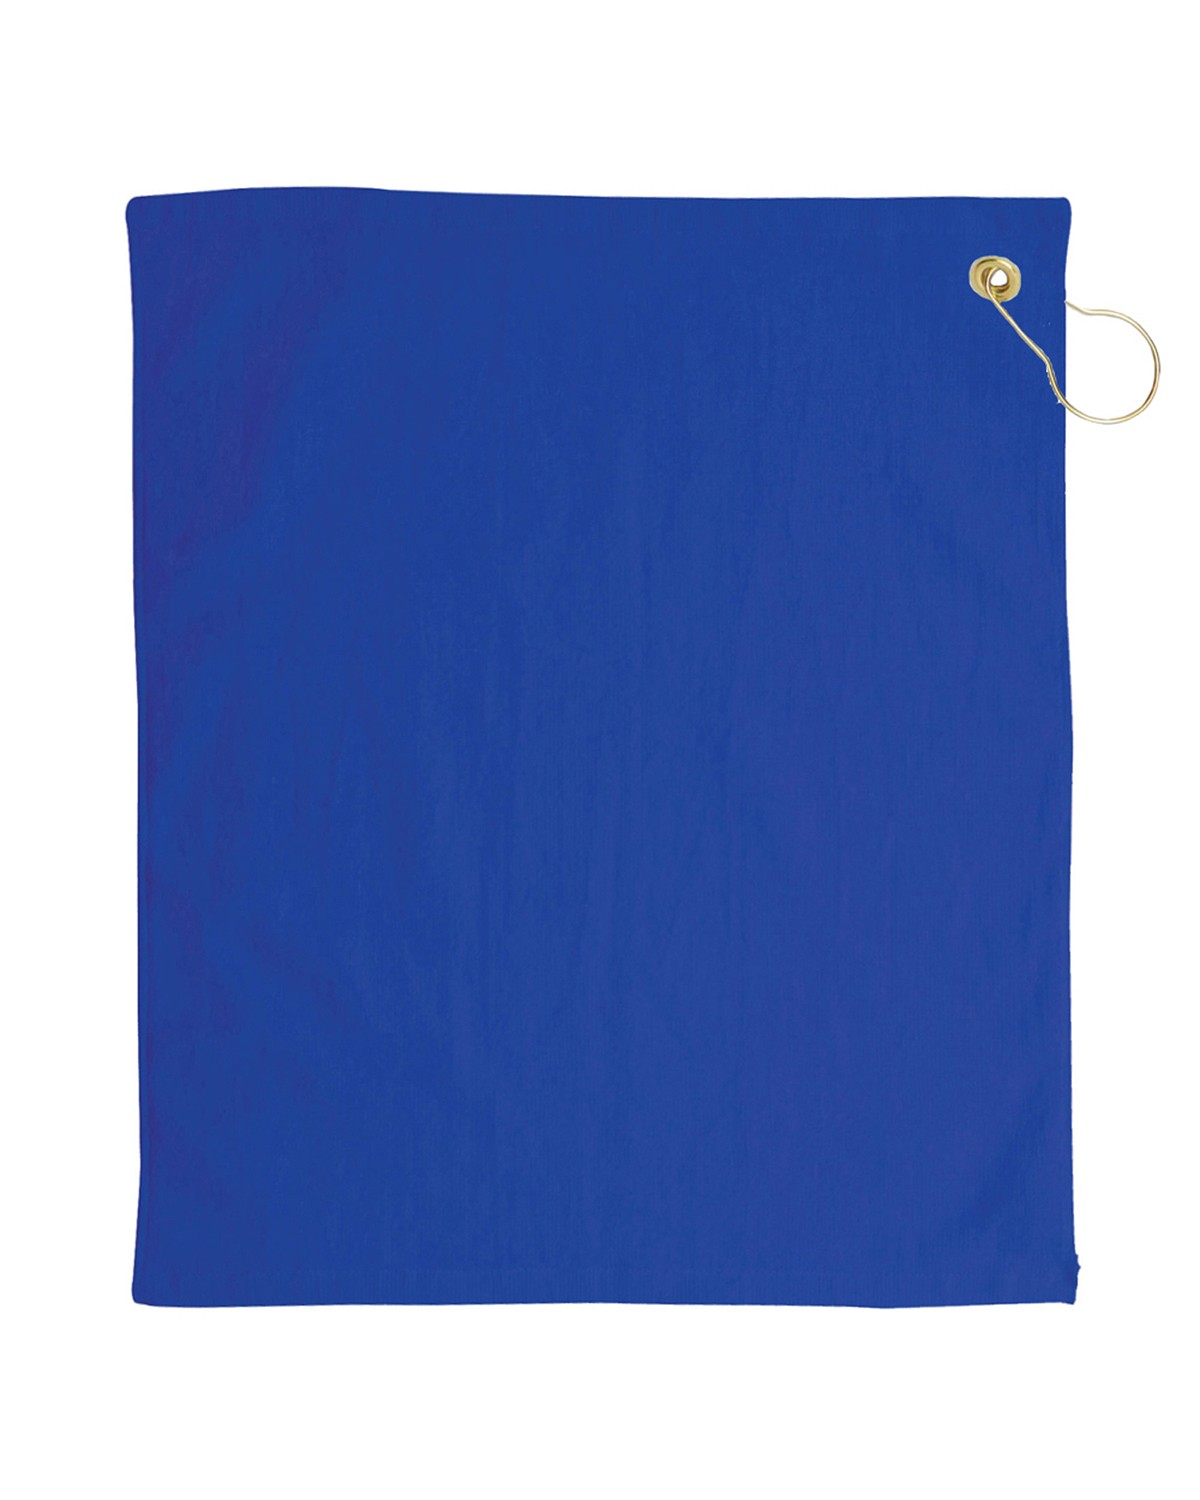 TRU18CG Pro Towels ROYAL BLUE